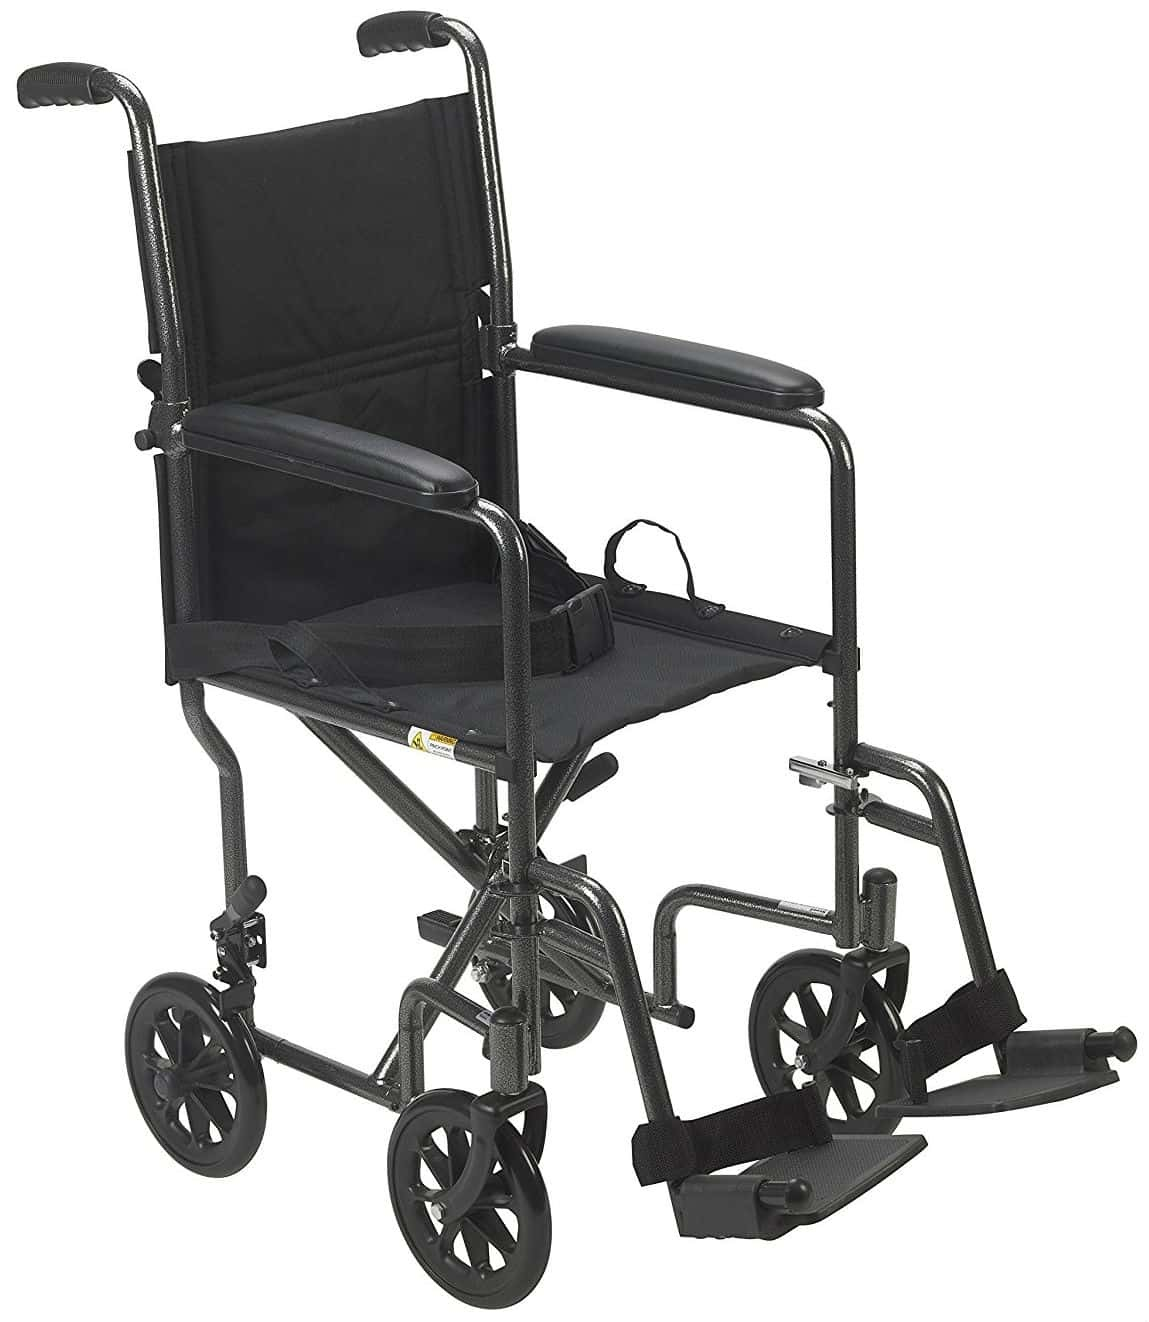 19-inch Seat Medical Lightweight Steel Transport Wheelchair